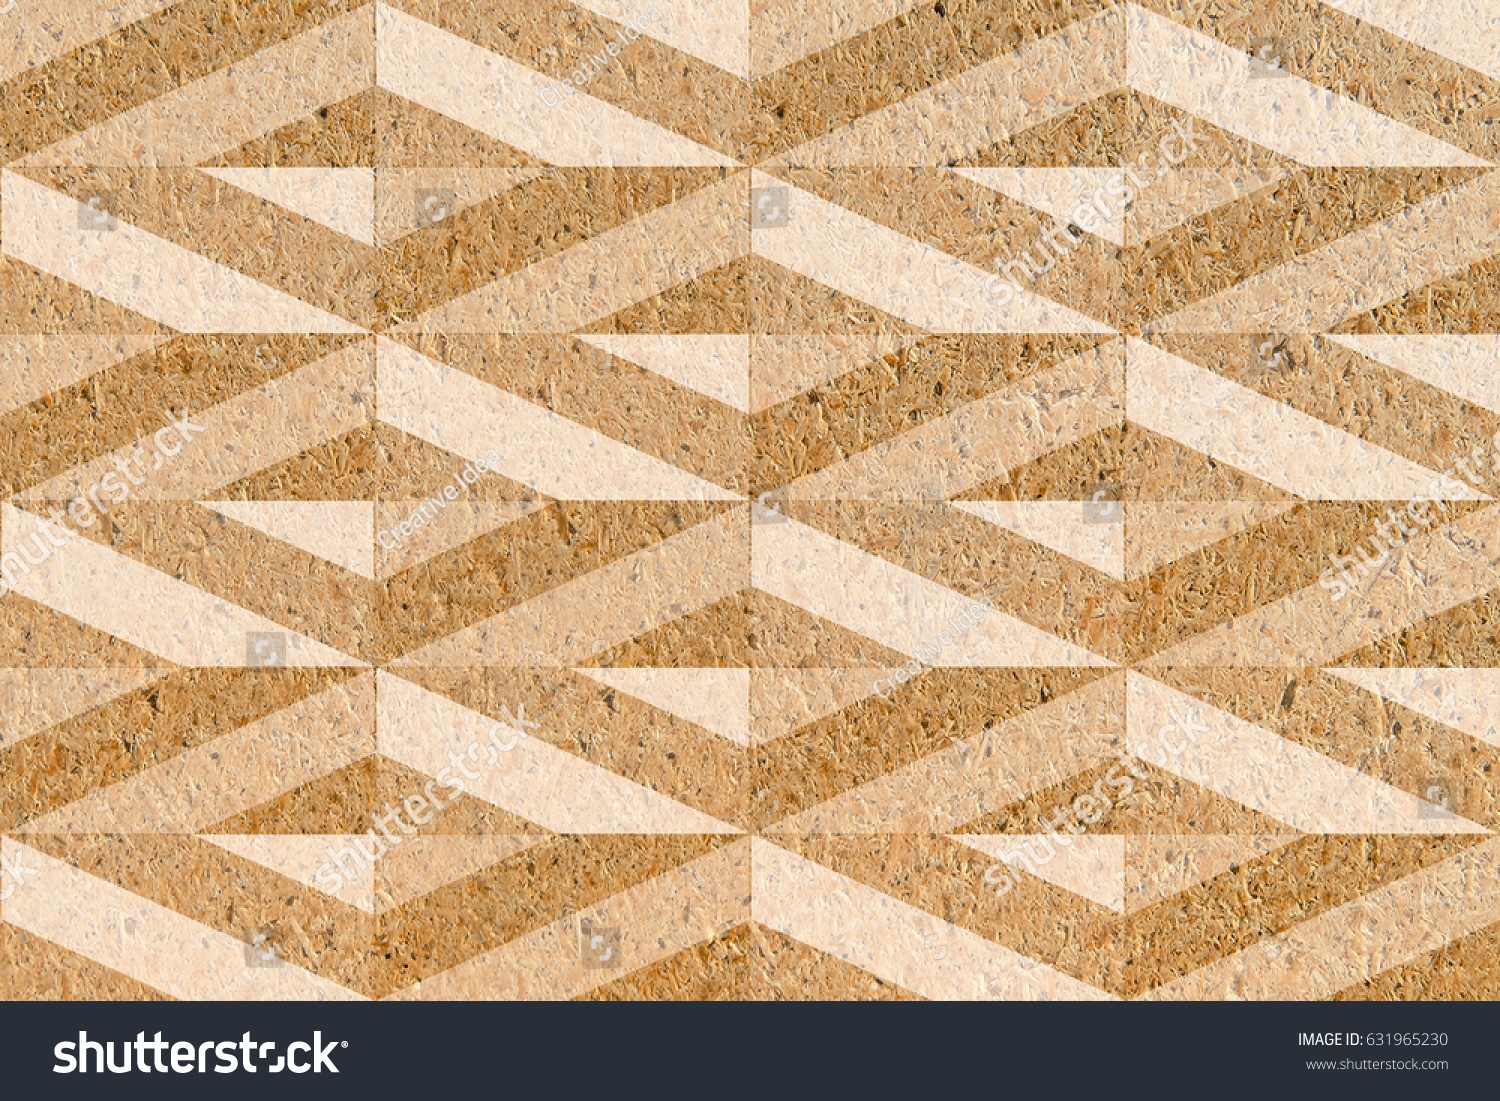 3 D Home Decorative Wall Tiles Design Stock Illustration 631965230 ...